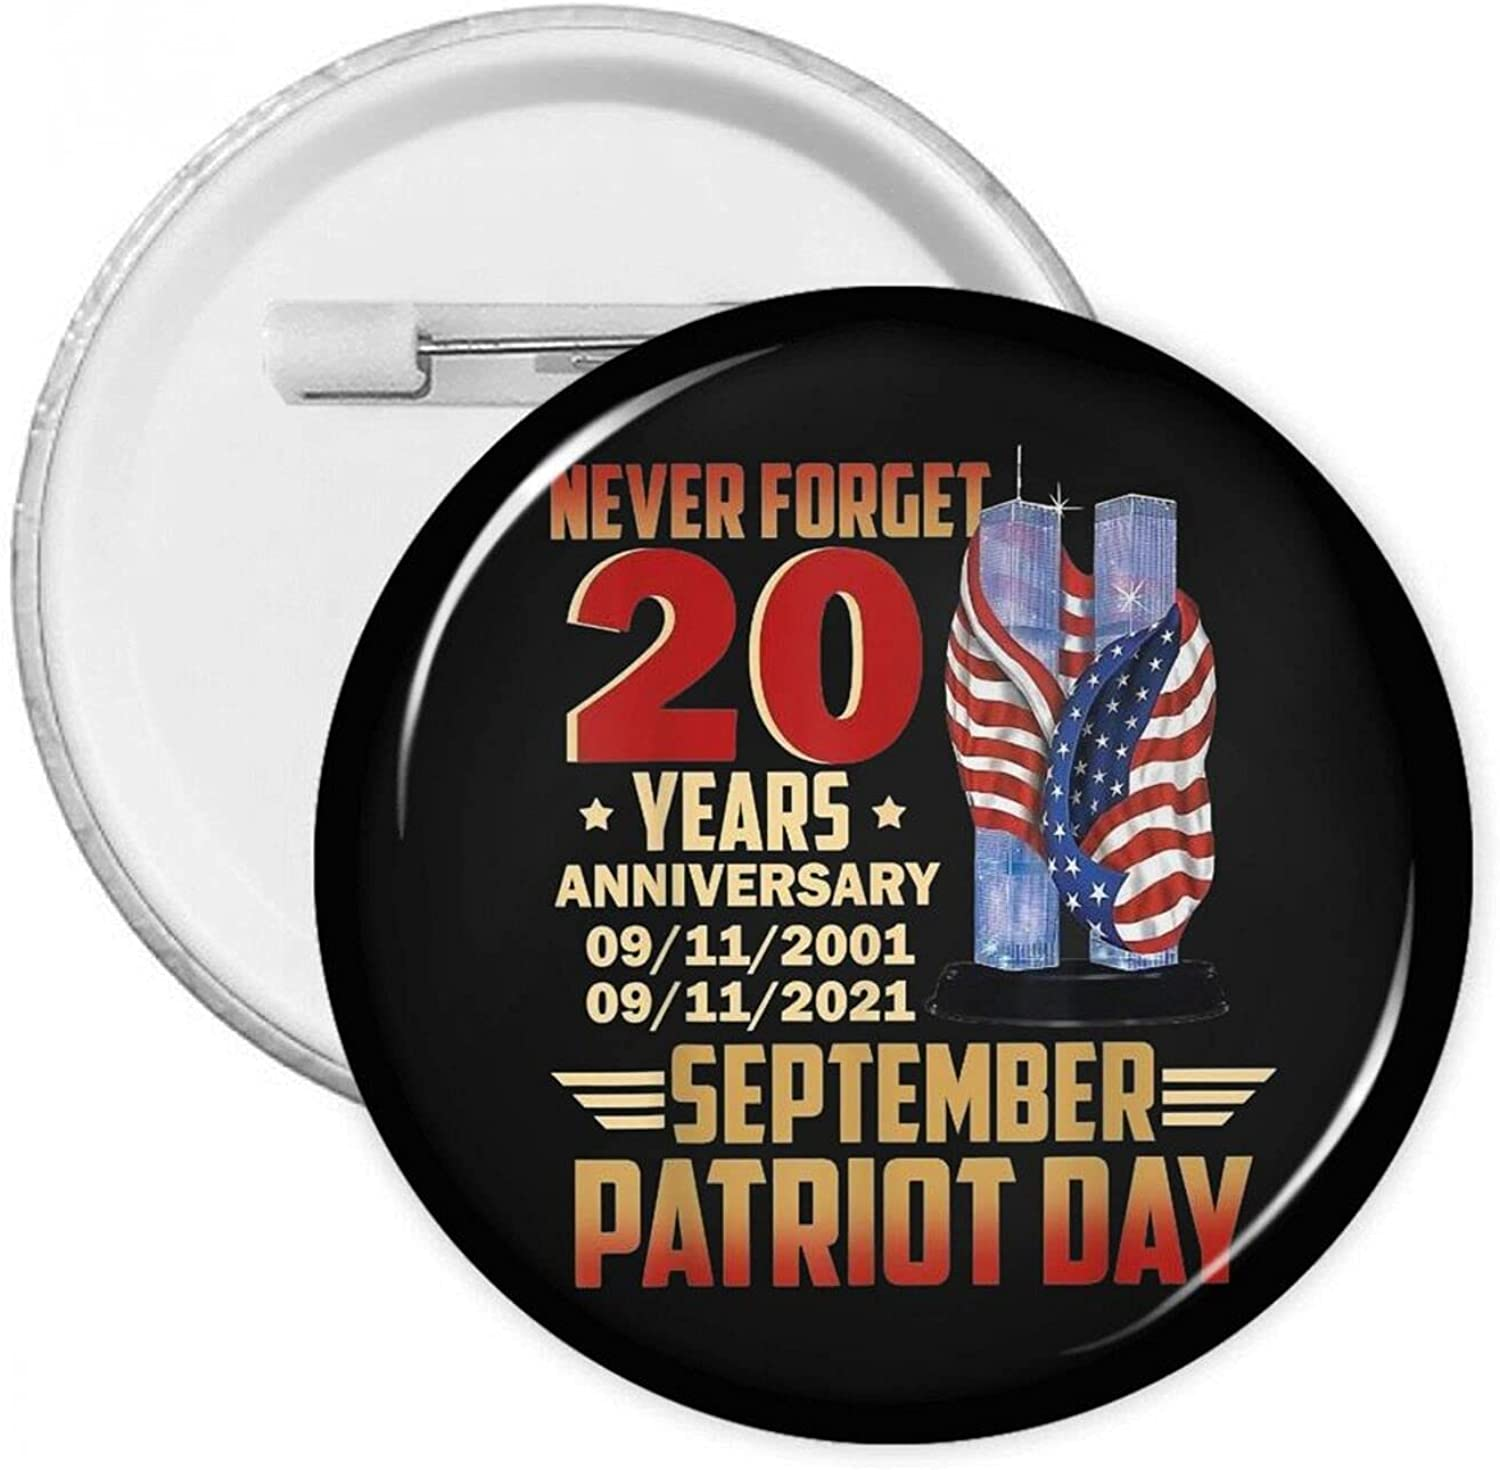 Never Forget OFFicial store 911 New Shipping Free 20th Anniversary Patriot Round Day Badge Button